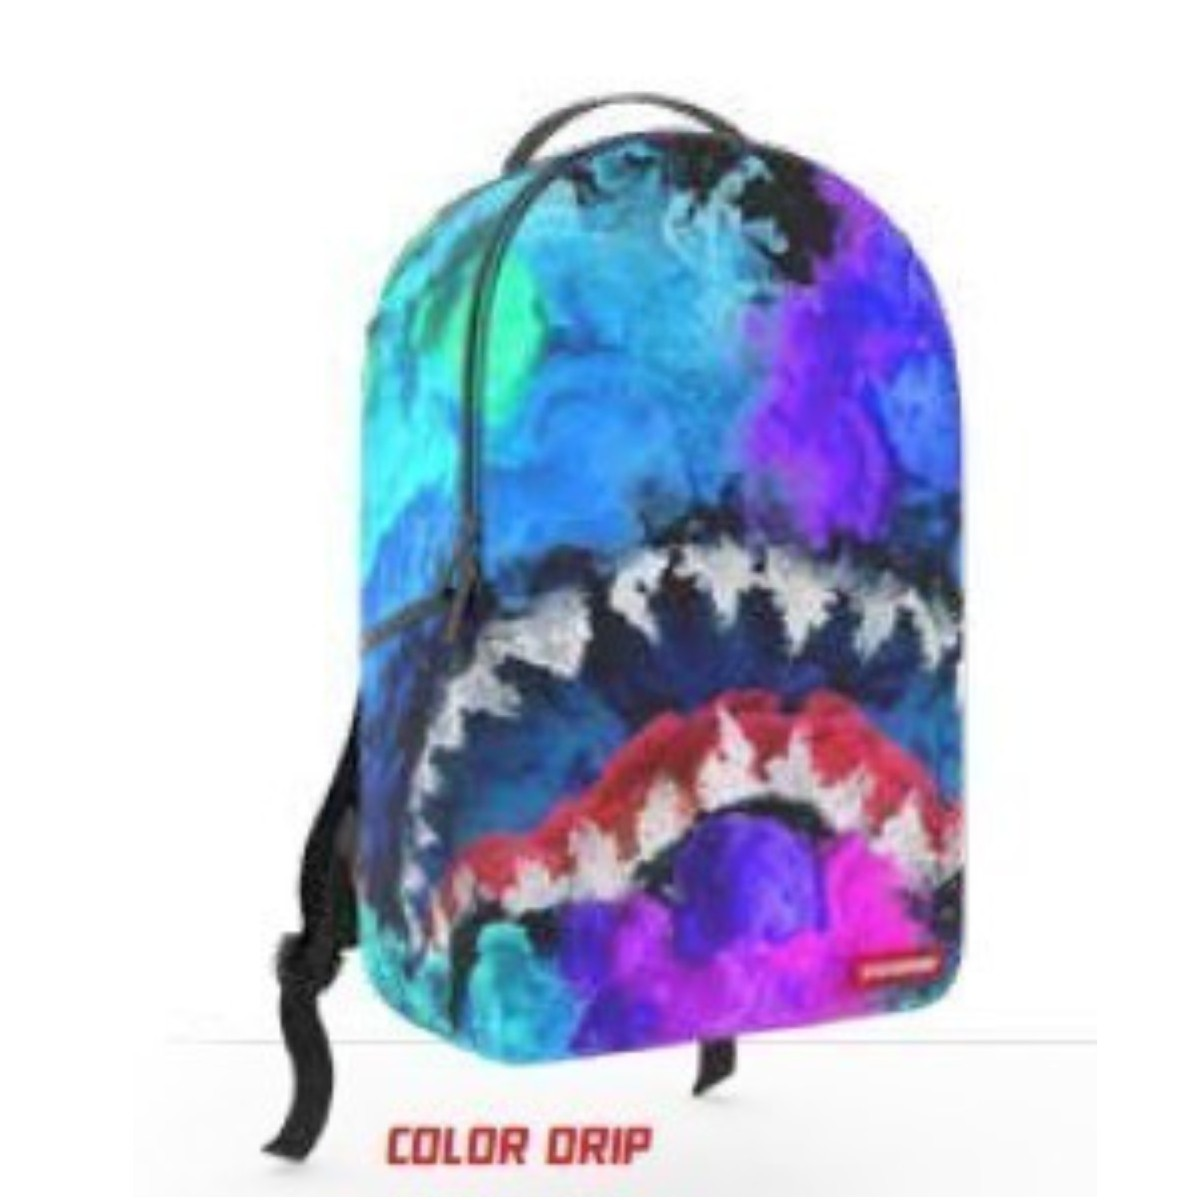 Zaino - Color drip 1442